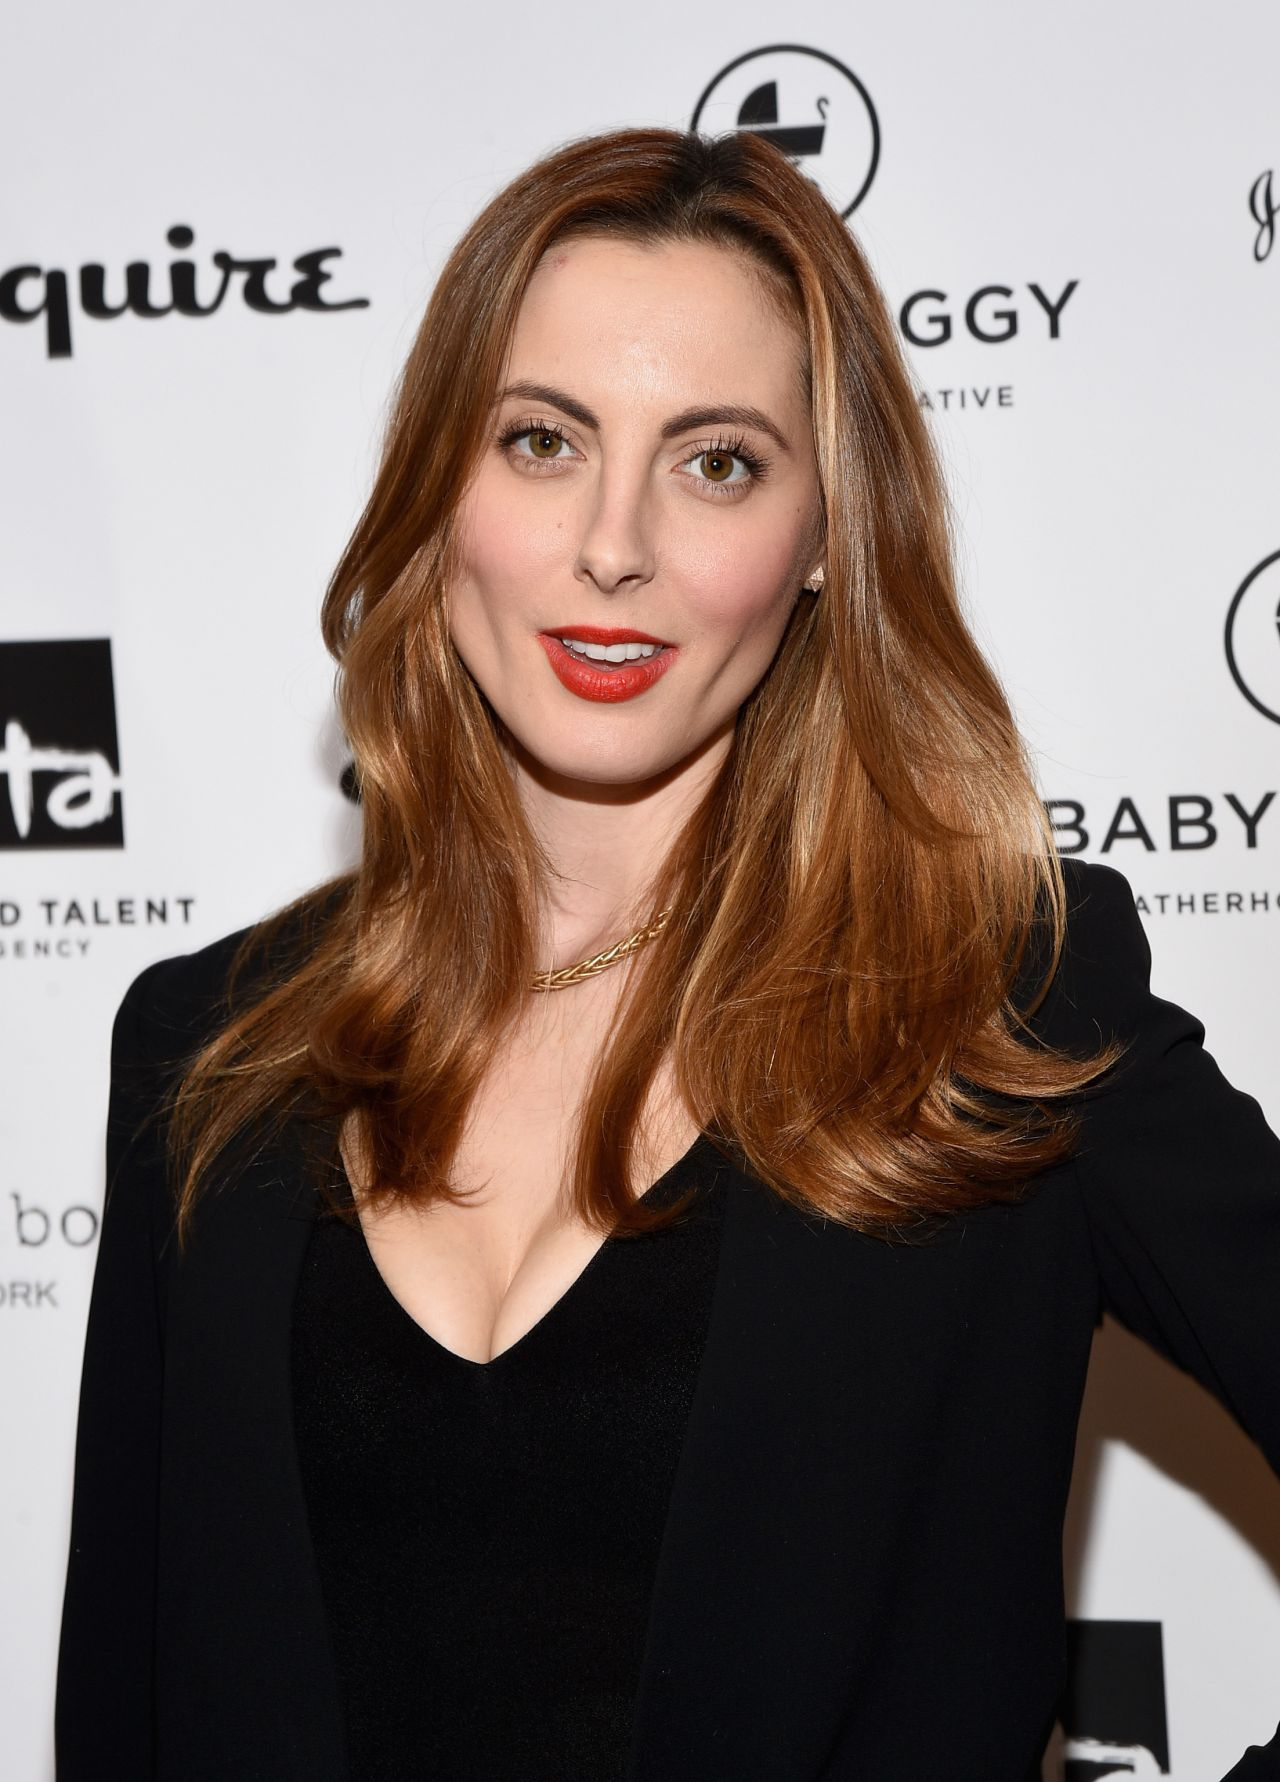 Eva Amurri Martino - Inaugural Los Angeles Fatherhood Lunch Benefit in Beverly Hills, March 2015